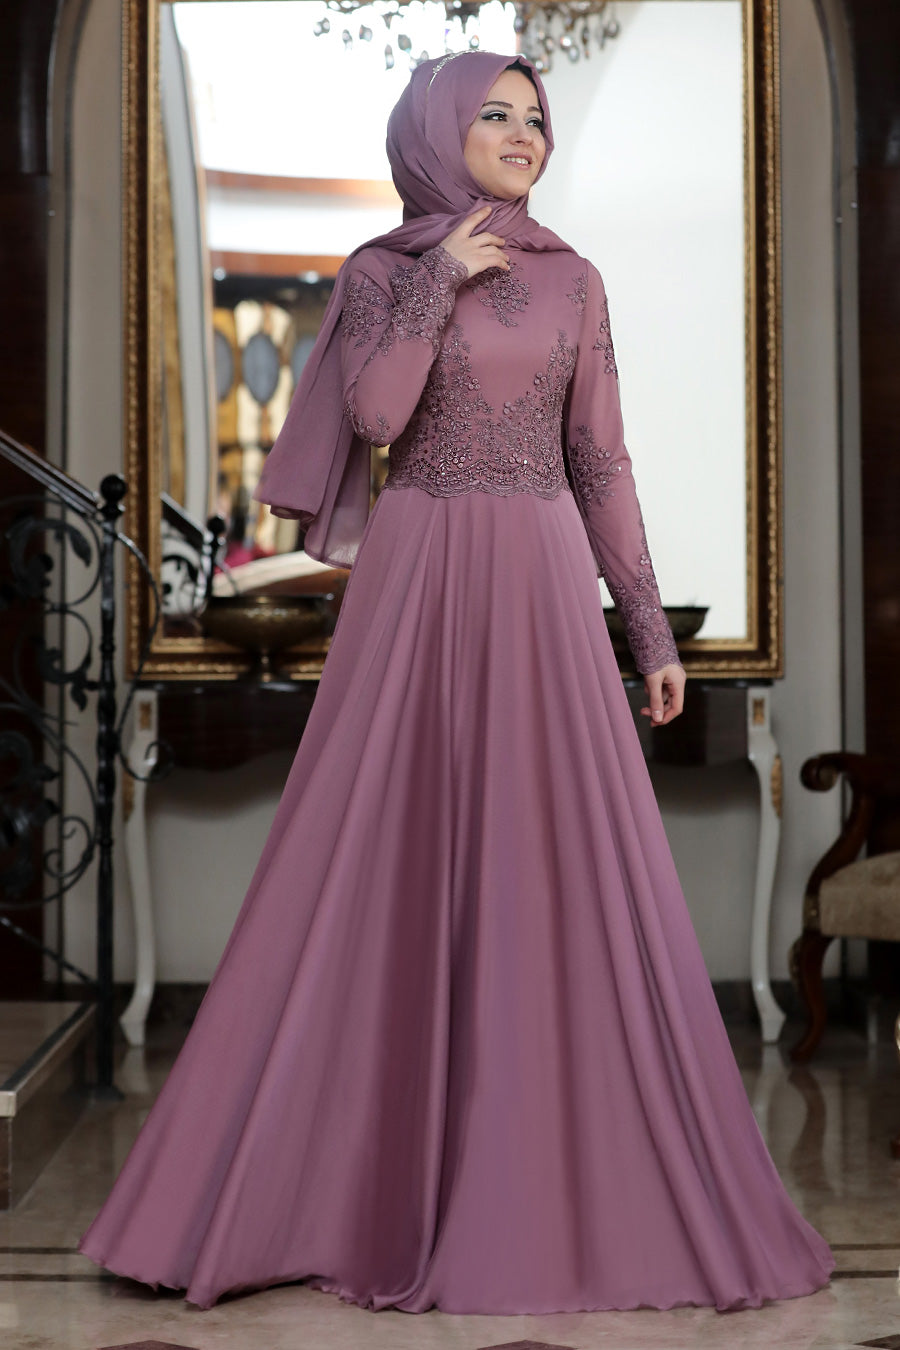 Sky Magenta Evening Dress - Buy Abaya Online